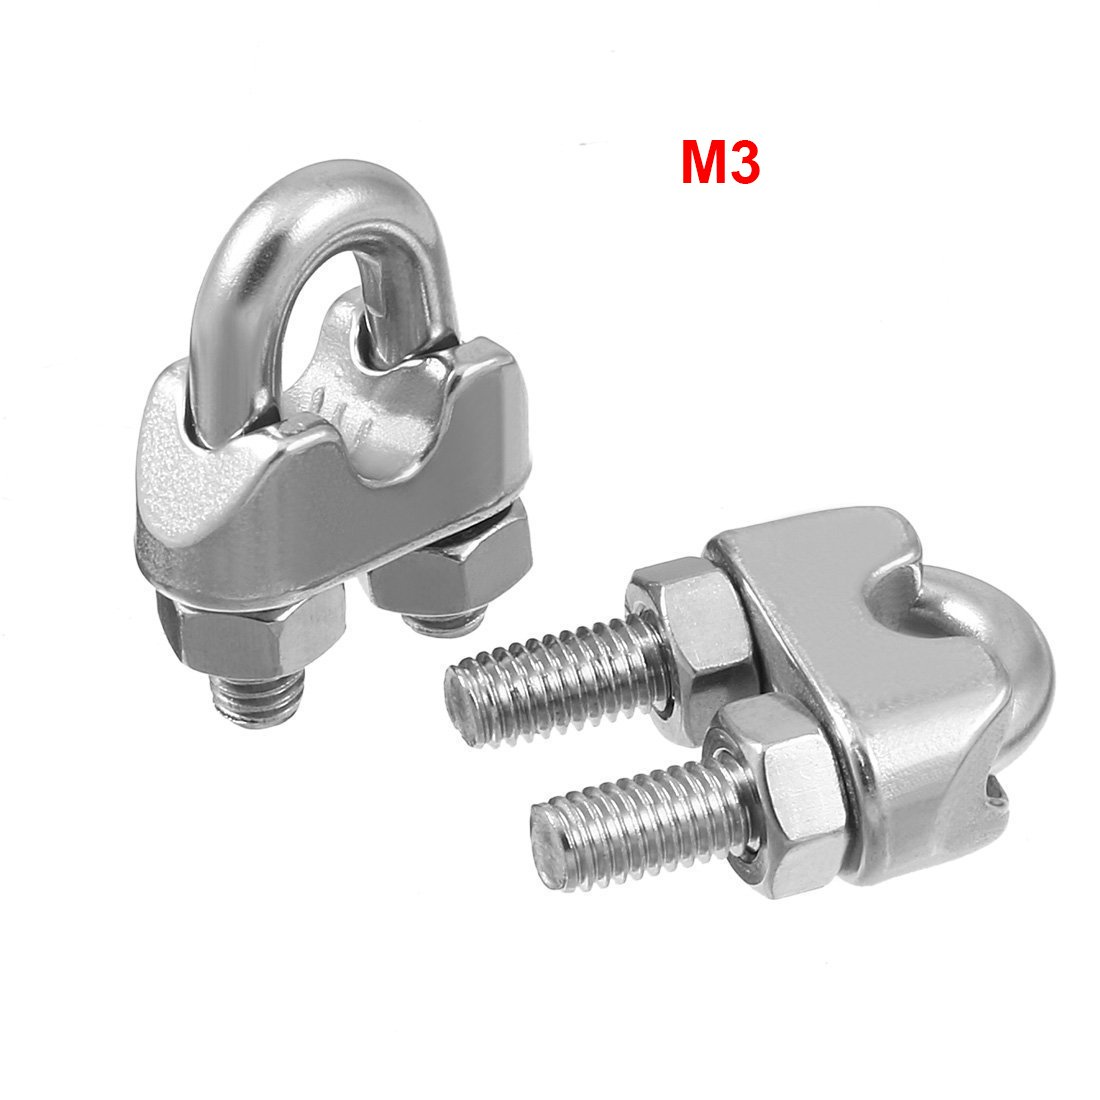 ZXHAO 12pcs M3 Stainless Steel Wire Rope Cable Clip Clamp 1//8